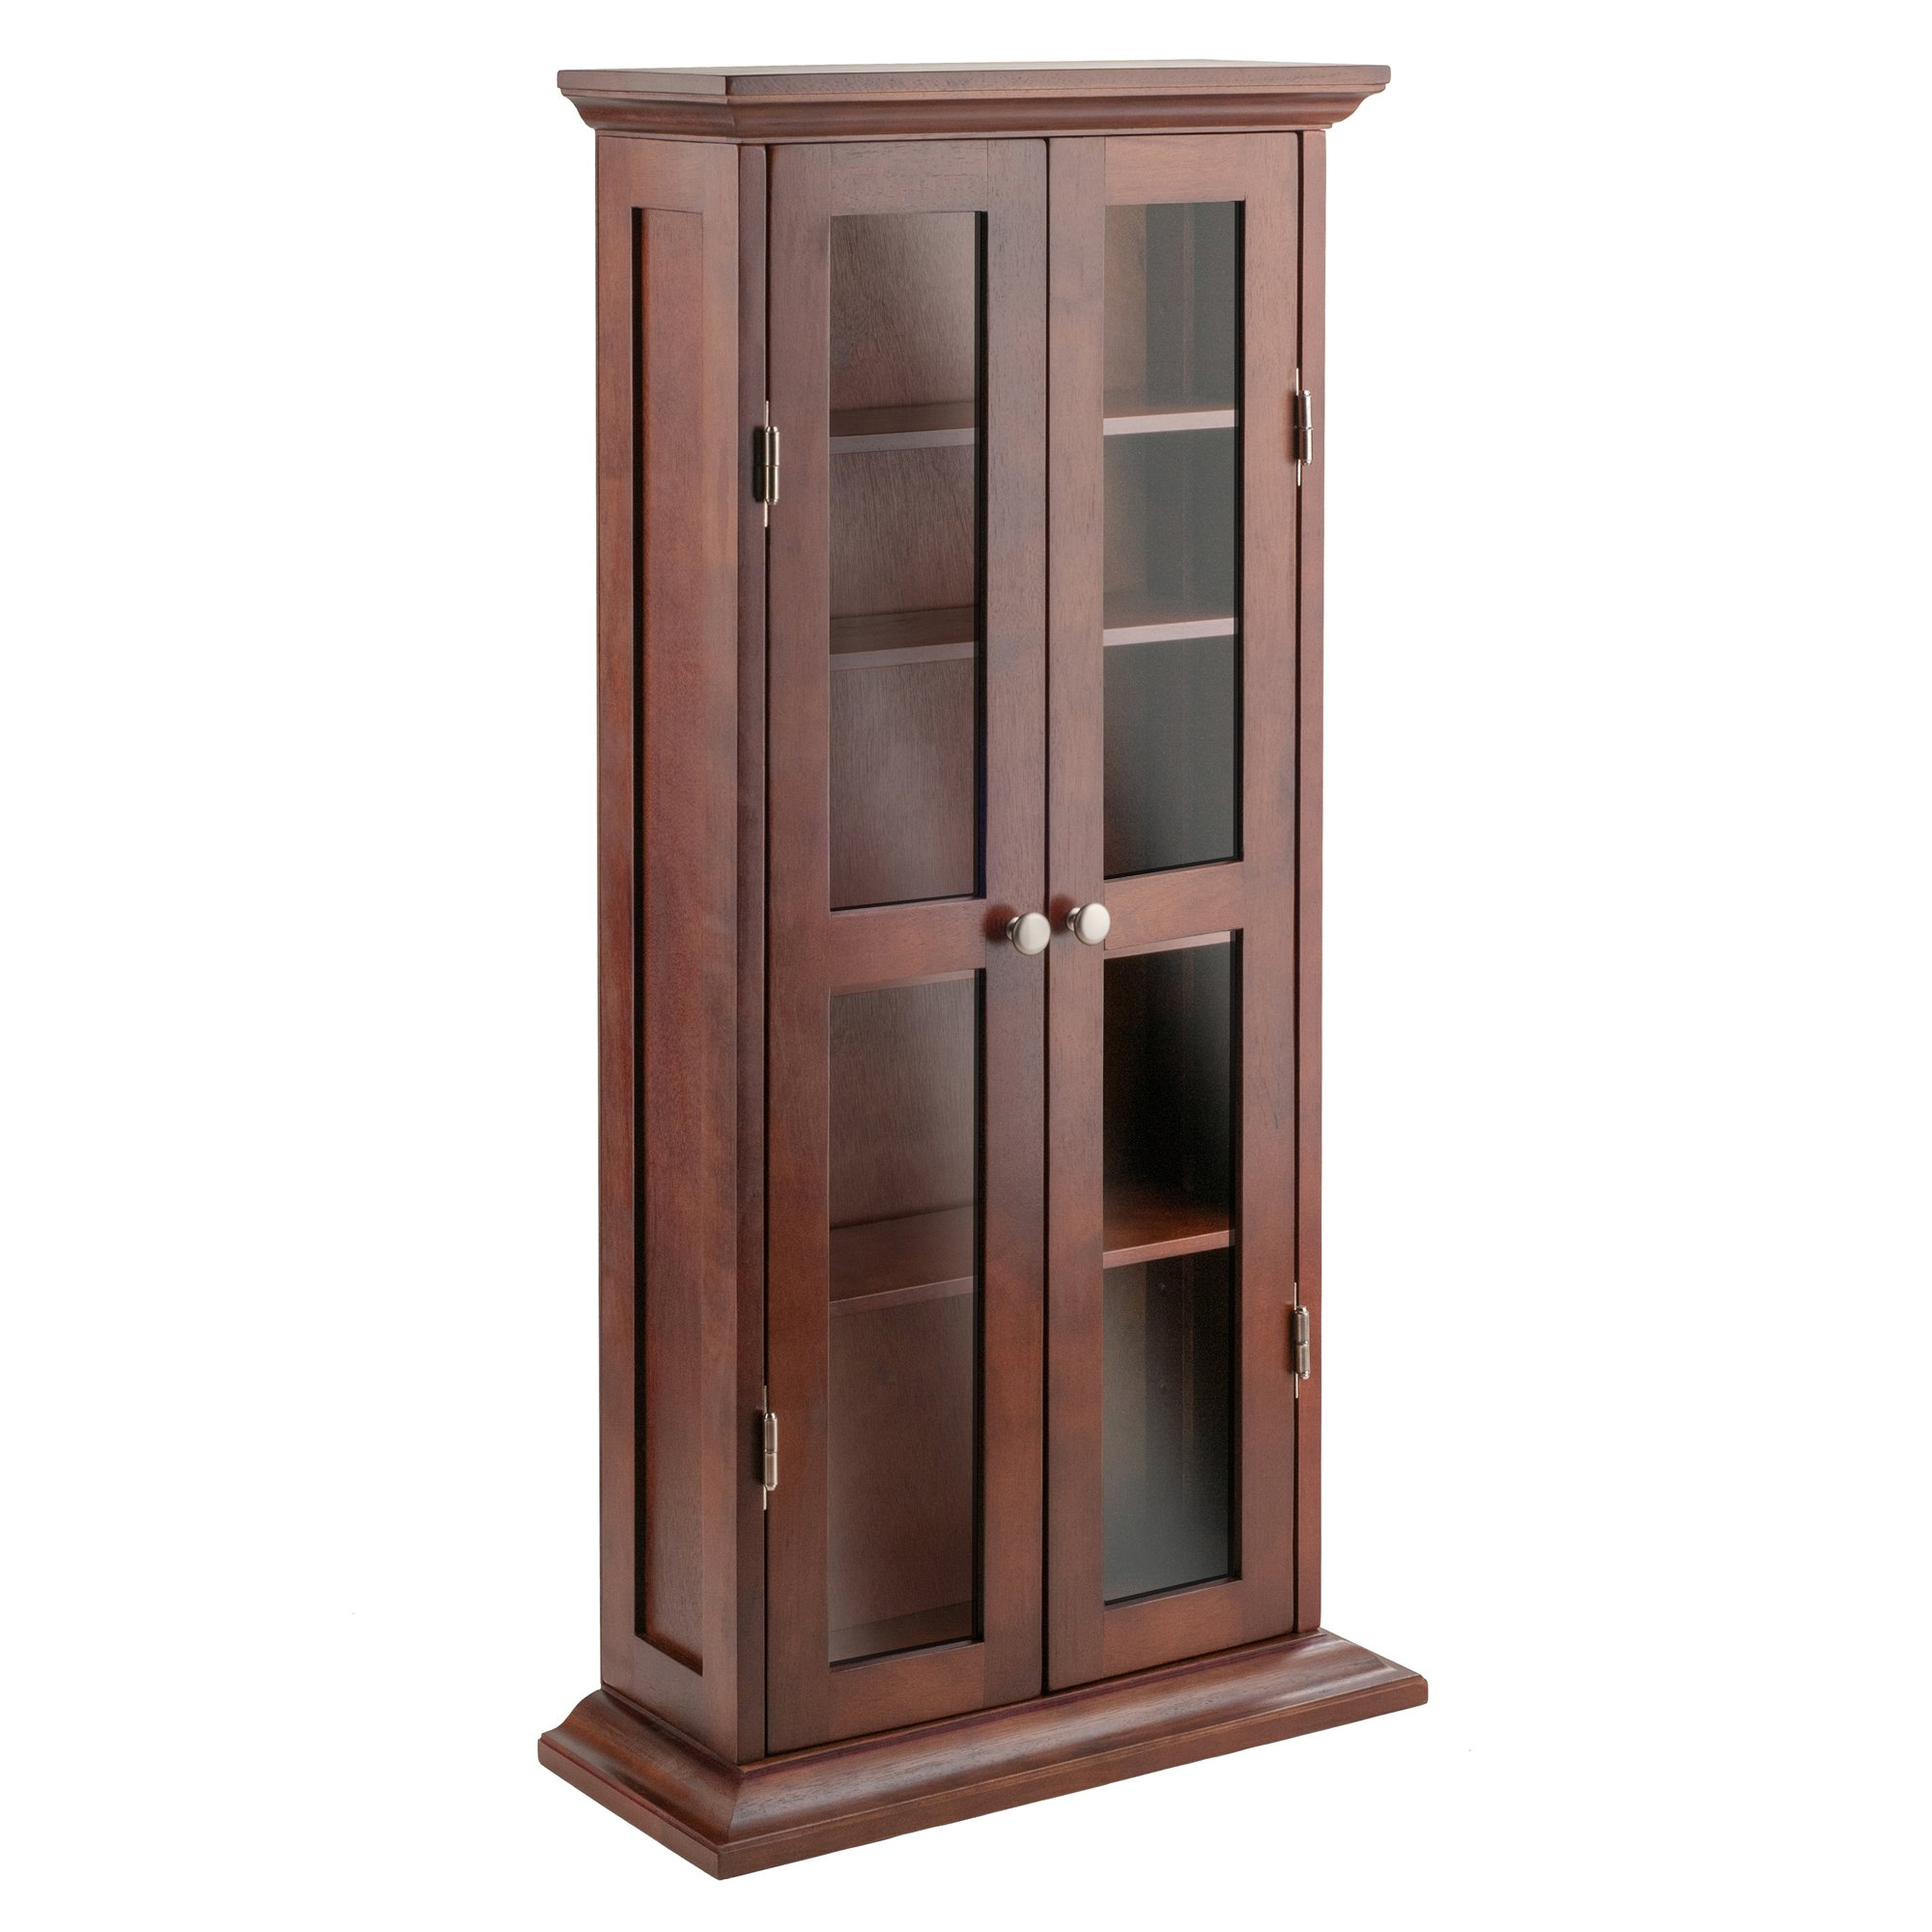 Winsome Wood 94944 Holden Media/Entertainment, Antique Walnut by Winsome Wood